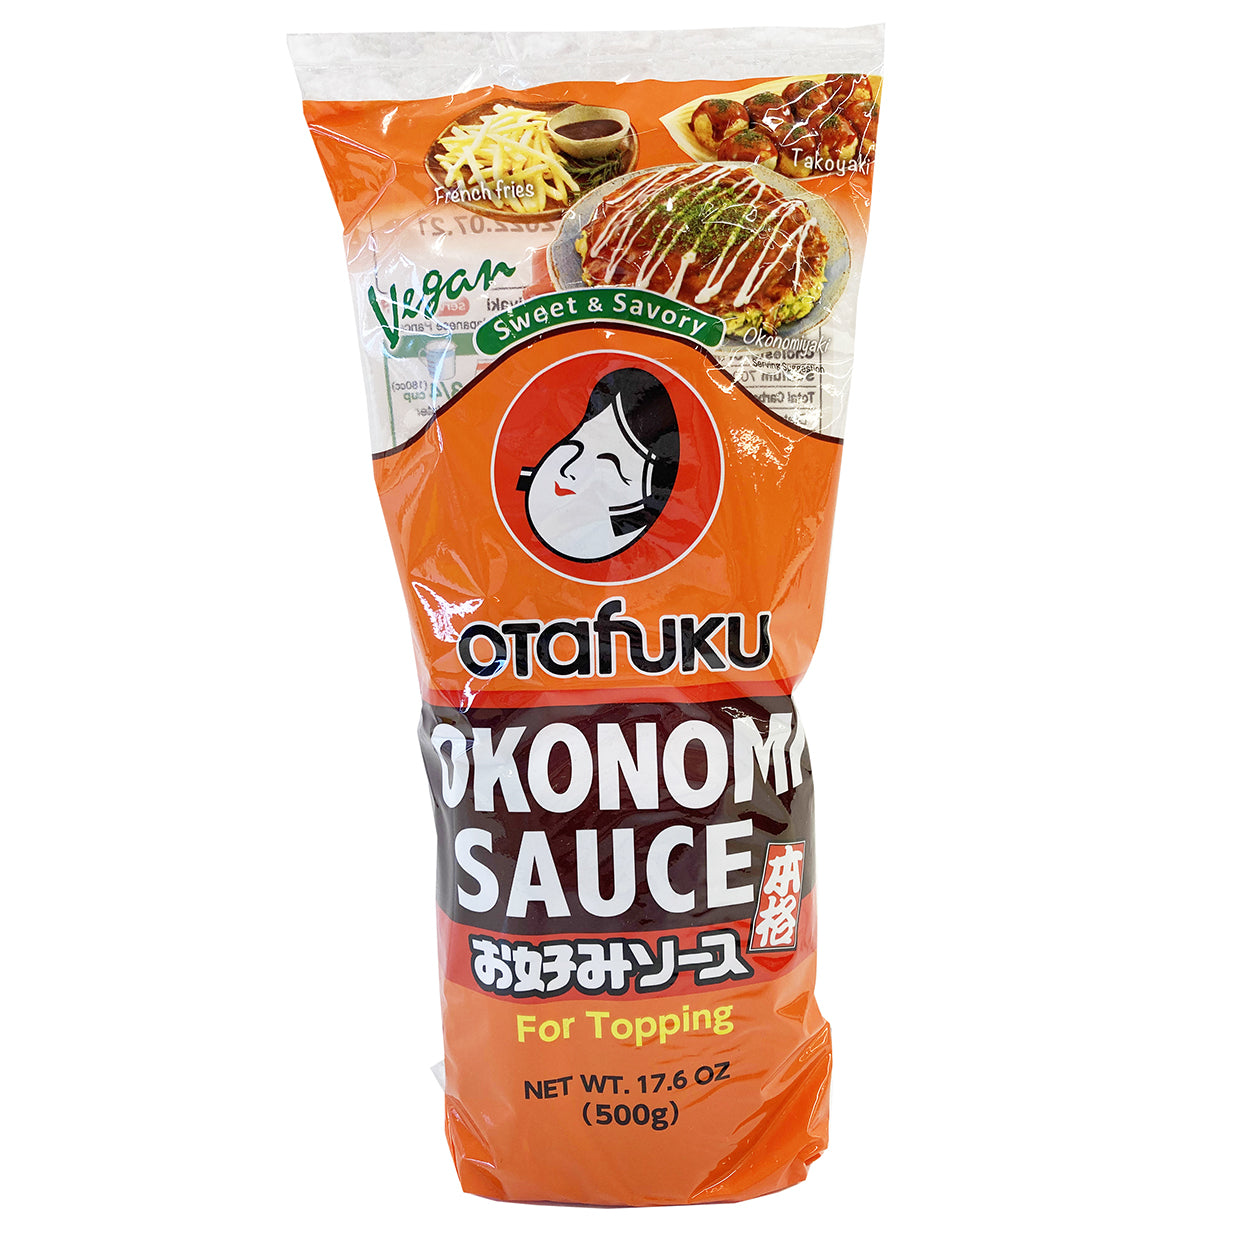 Otafuku Vegan Okonomiyaki Sauce 17.6 oz / 500g Japanese Grocery Deliver to NY NJ